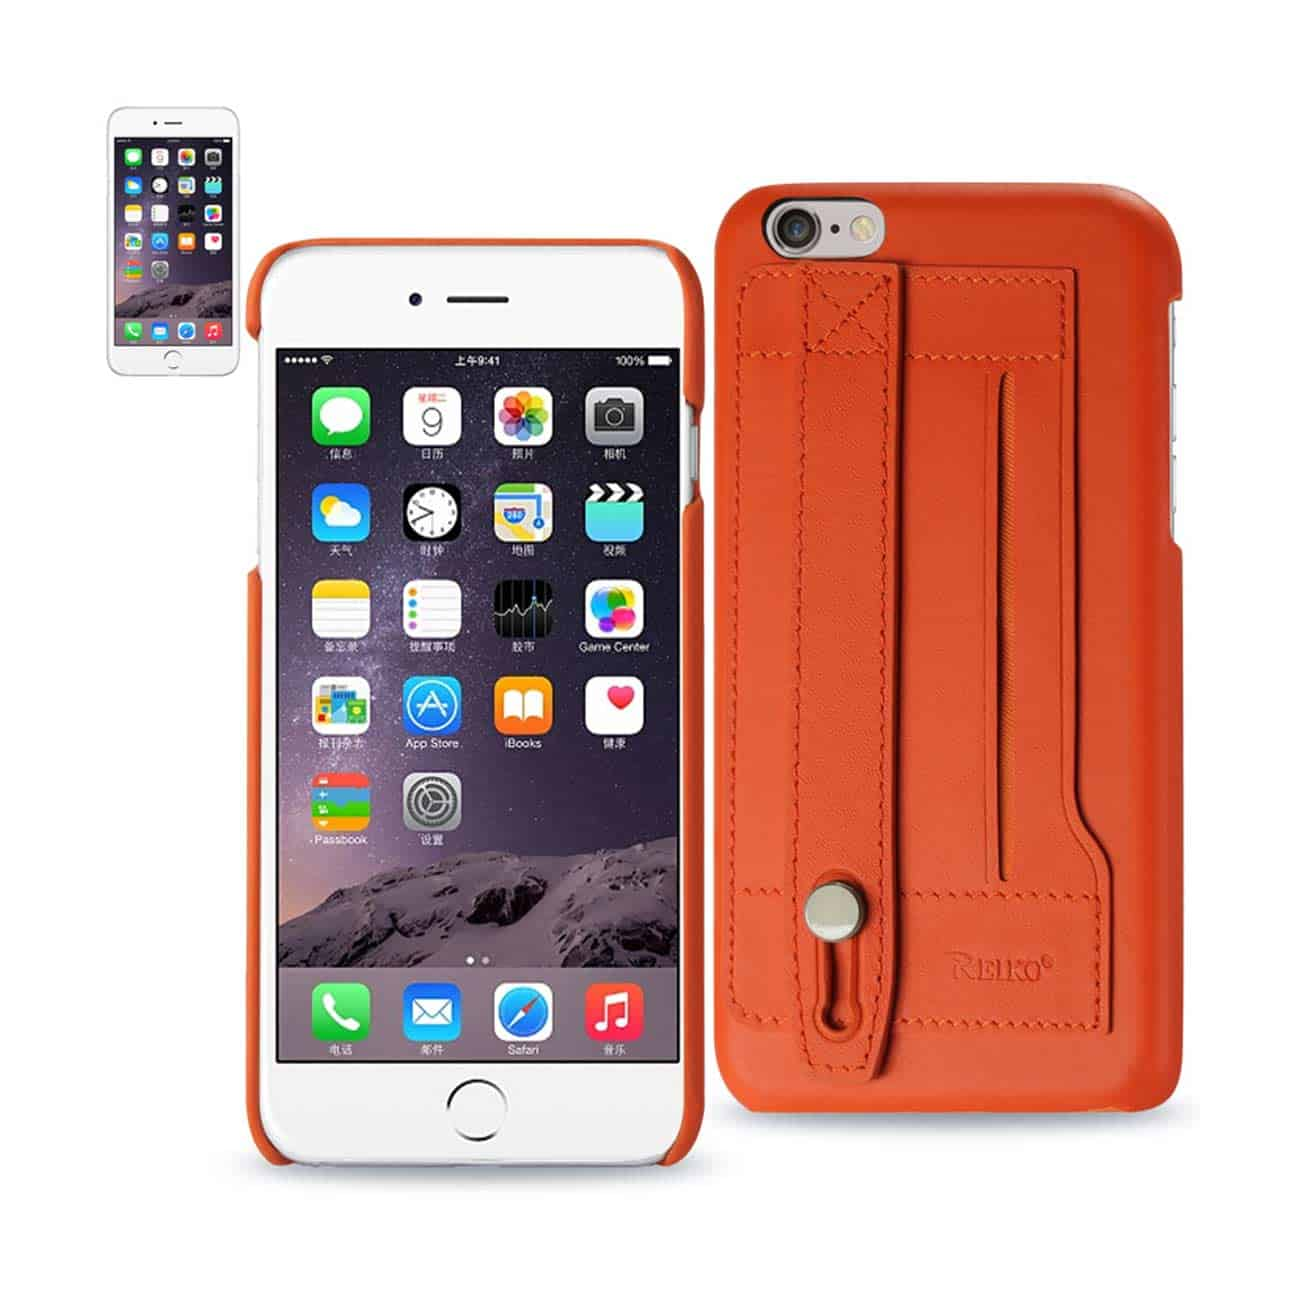 IPHONE 6 PLUS GENUINE LEATHER HAND STRAP CASE IN TANGERINE